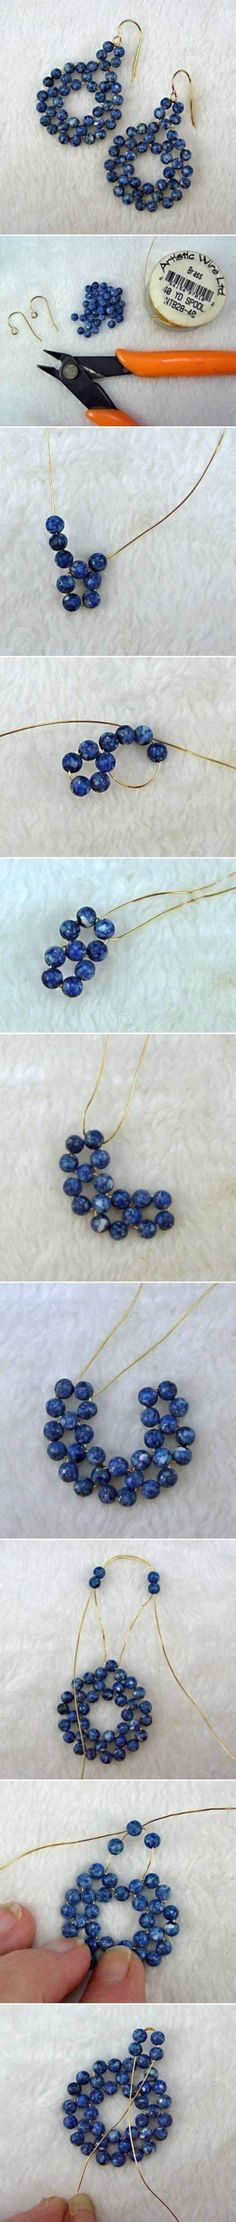 DIY Beads on Wire Earrings DIY Beads on Wire Earrings by diyforever